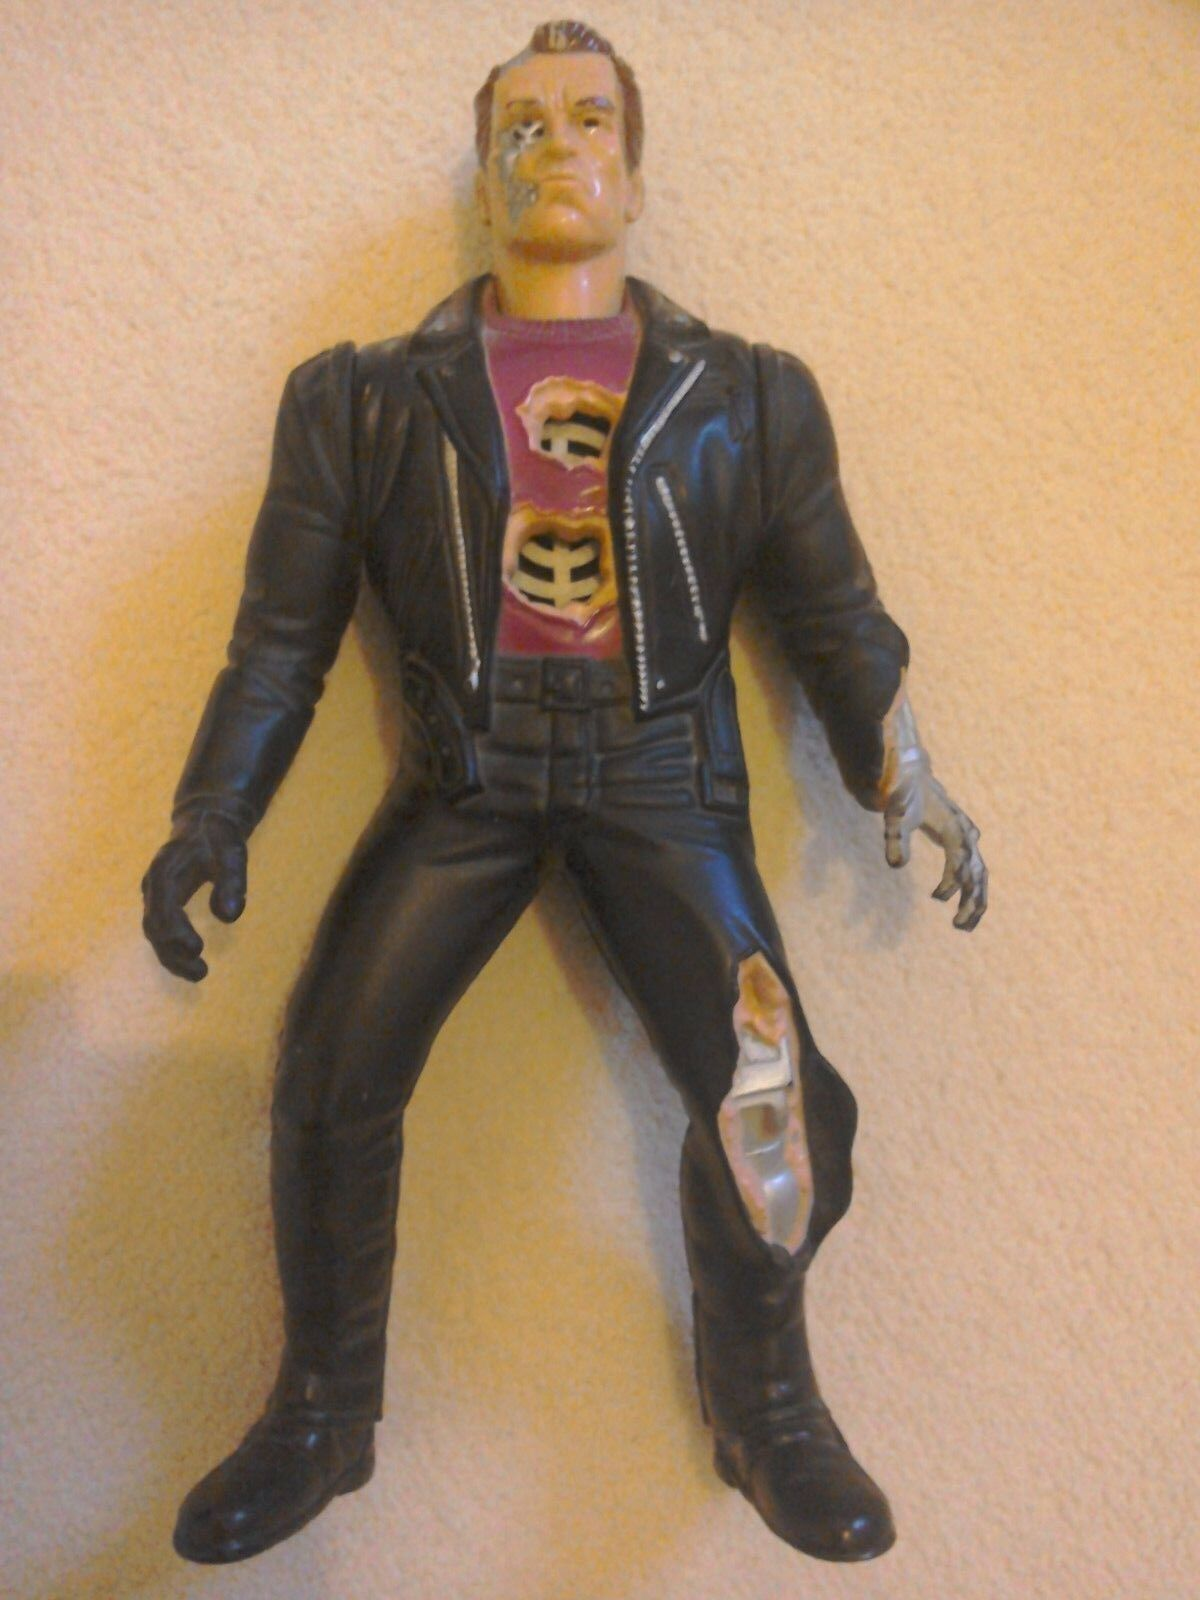 Very rare Kenner Kenner Kenner Terminator 2 The Ultimate Terminator Doll with Sounds no box cc5275